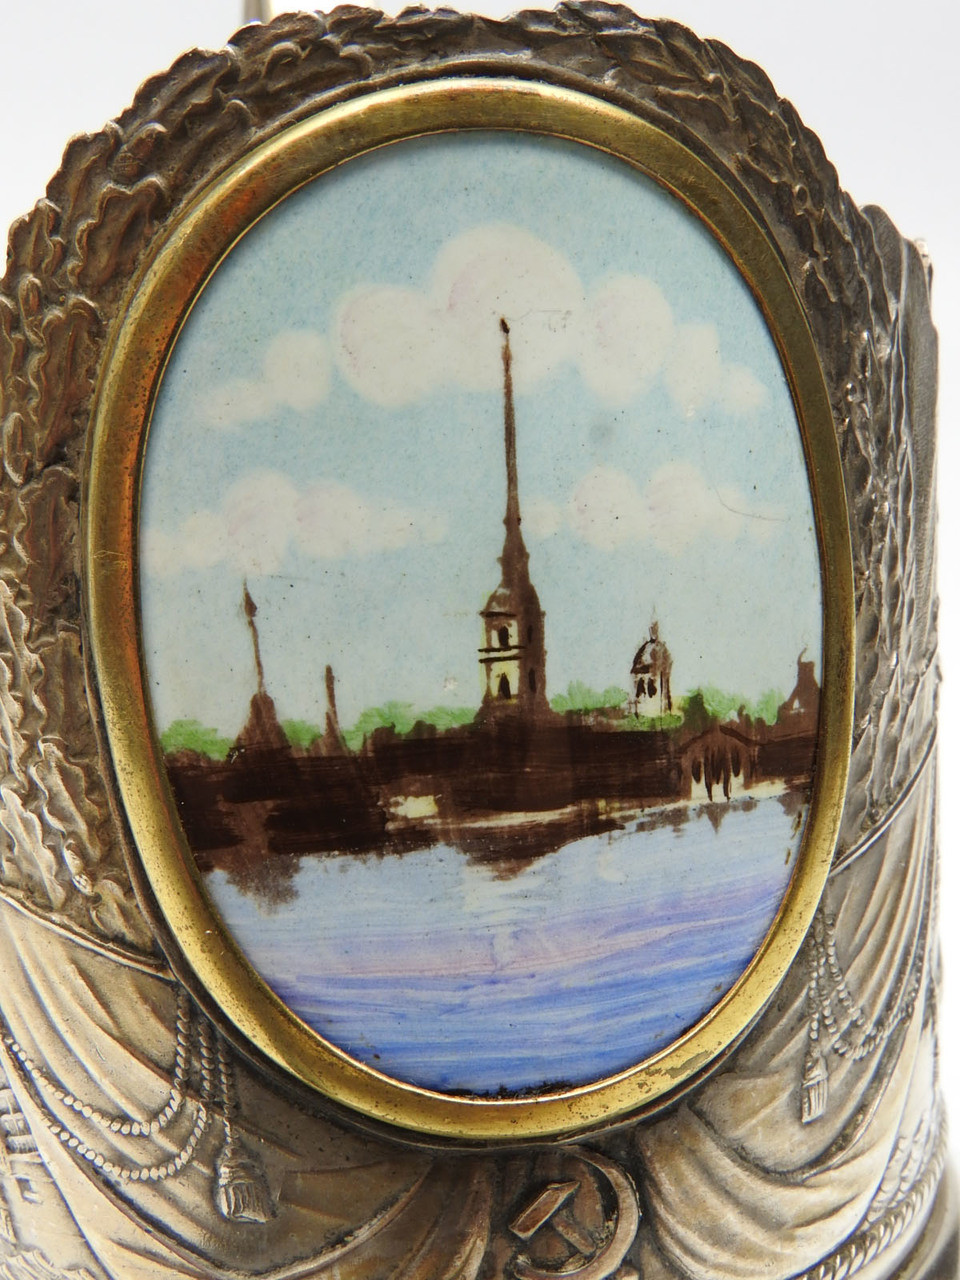 Vintage Tea Glass Holder with Enamel Plaque of a St. Petersburg Church